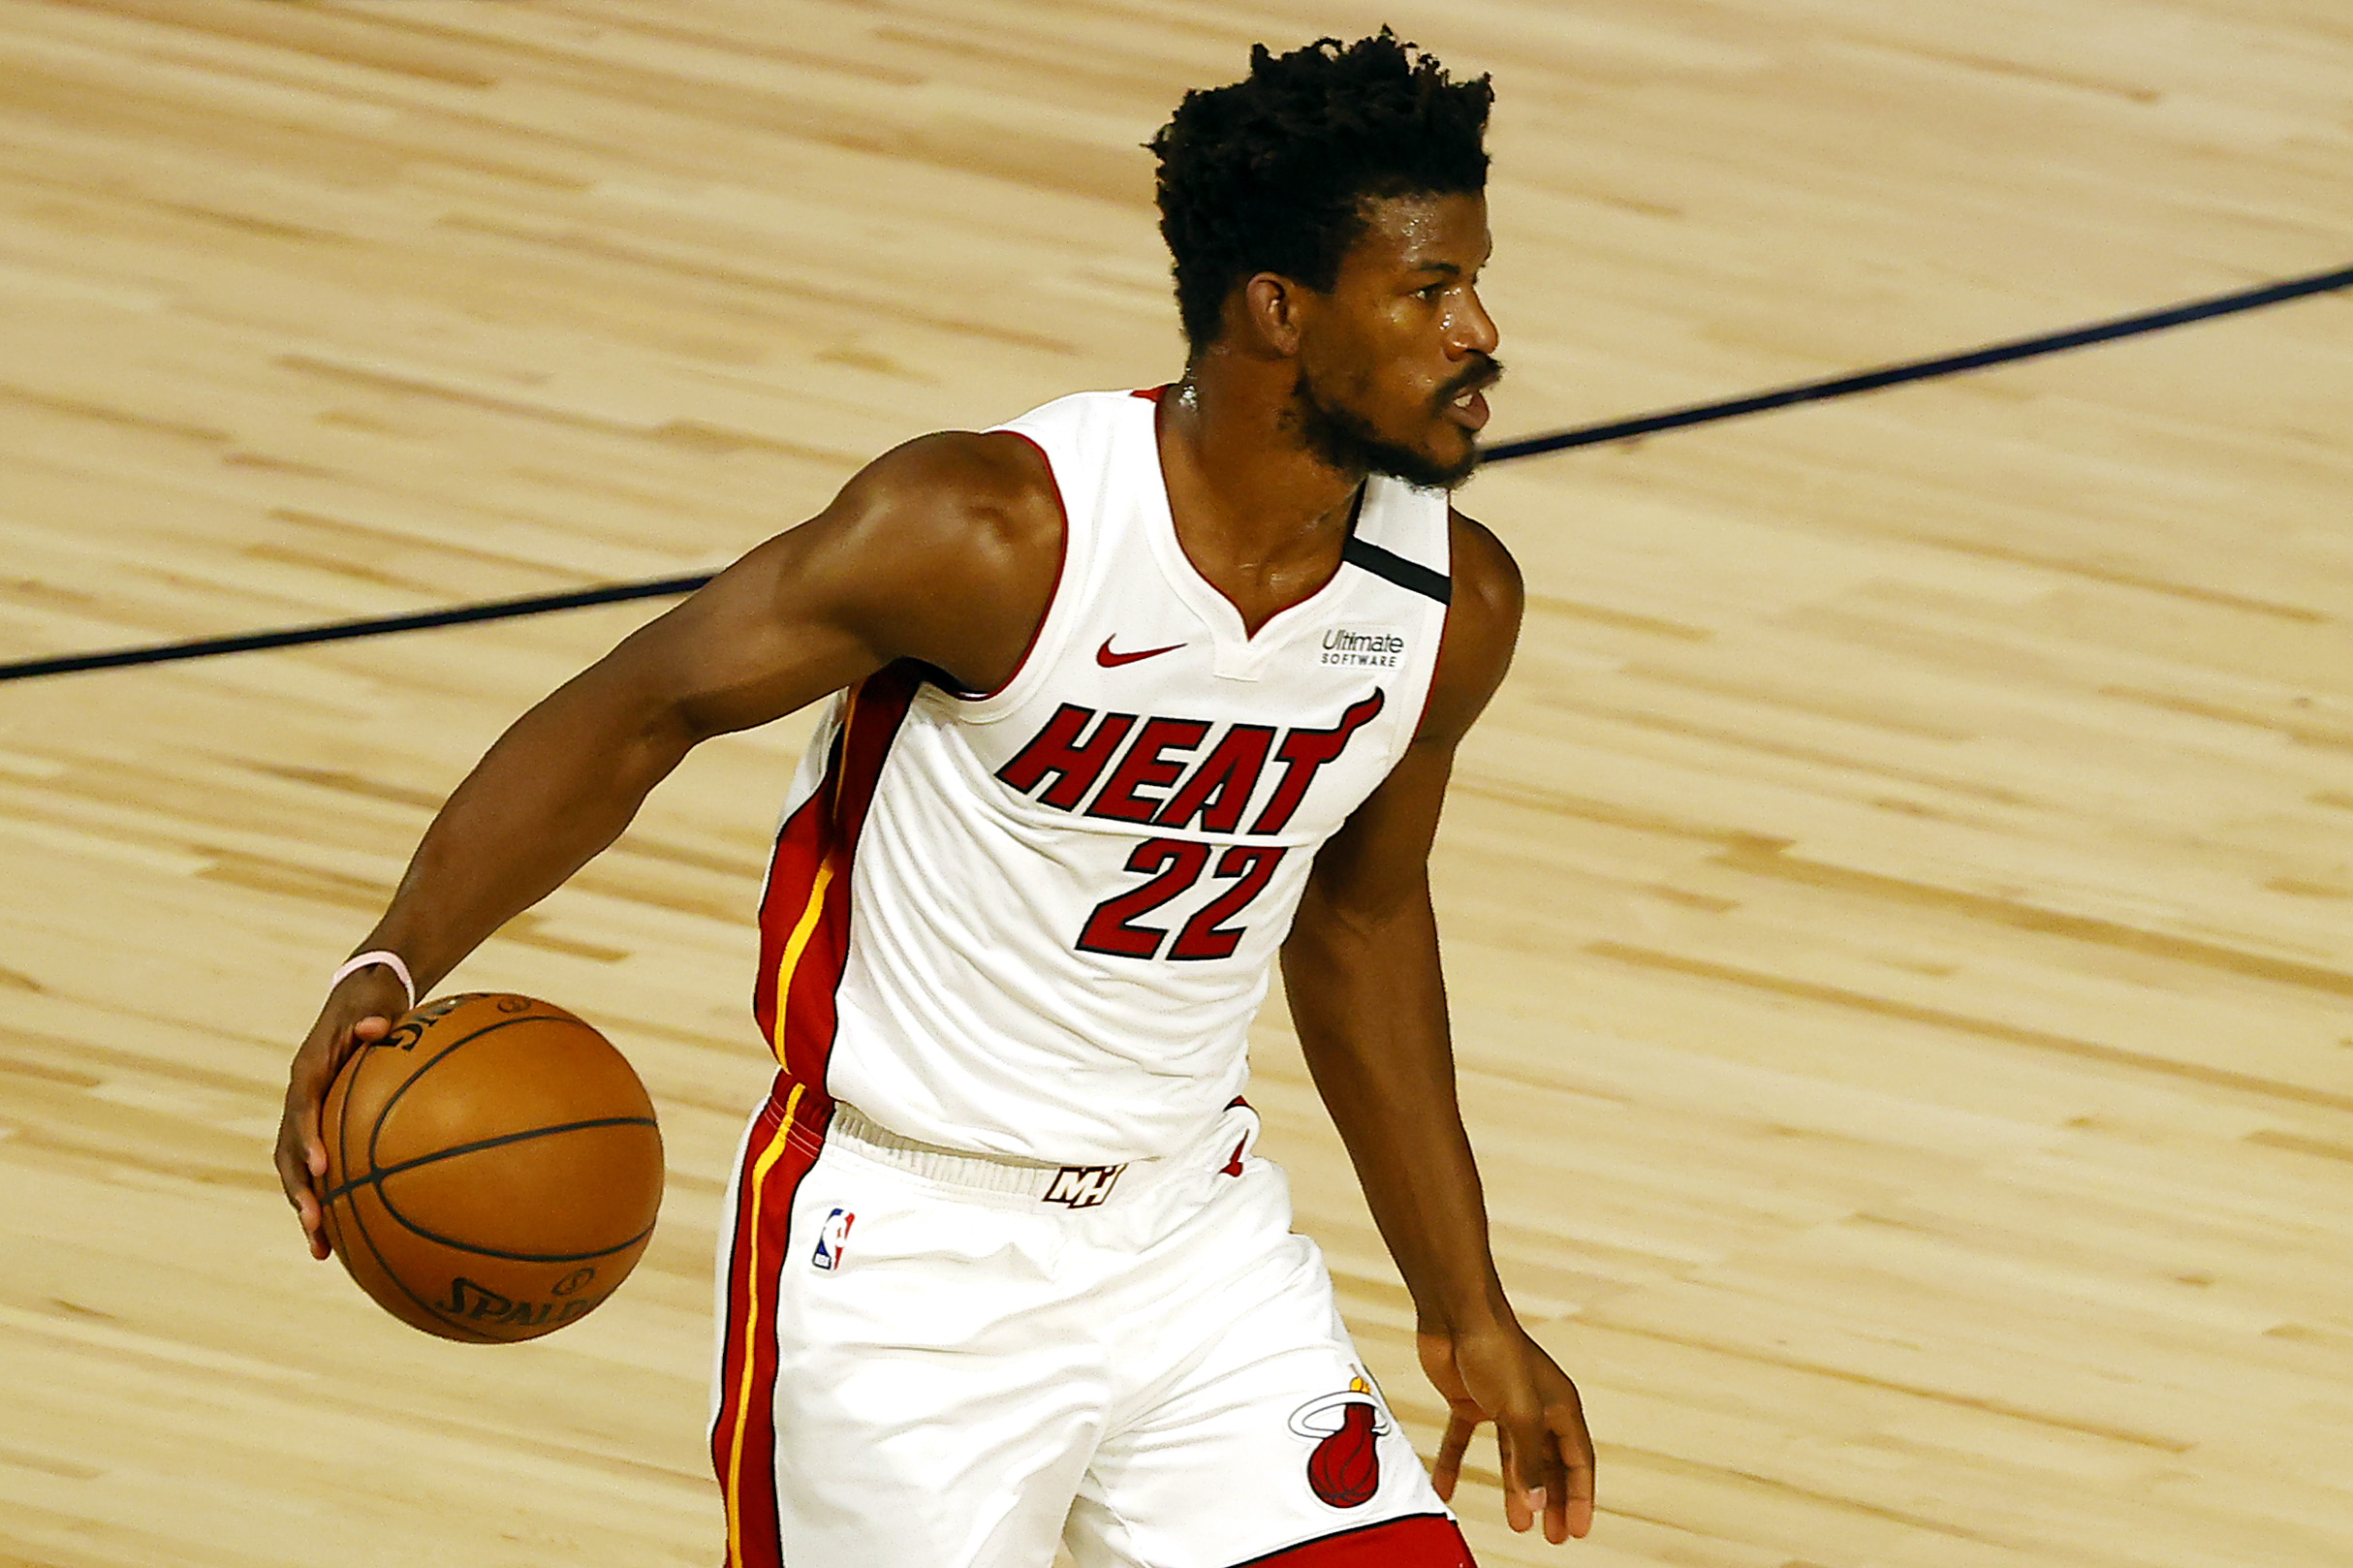 Jimmy Butler dribbles the ball up the court during an NBA game